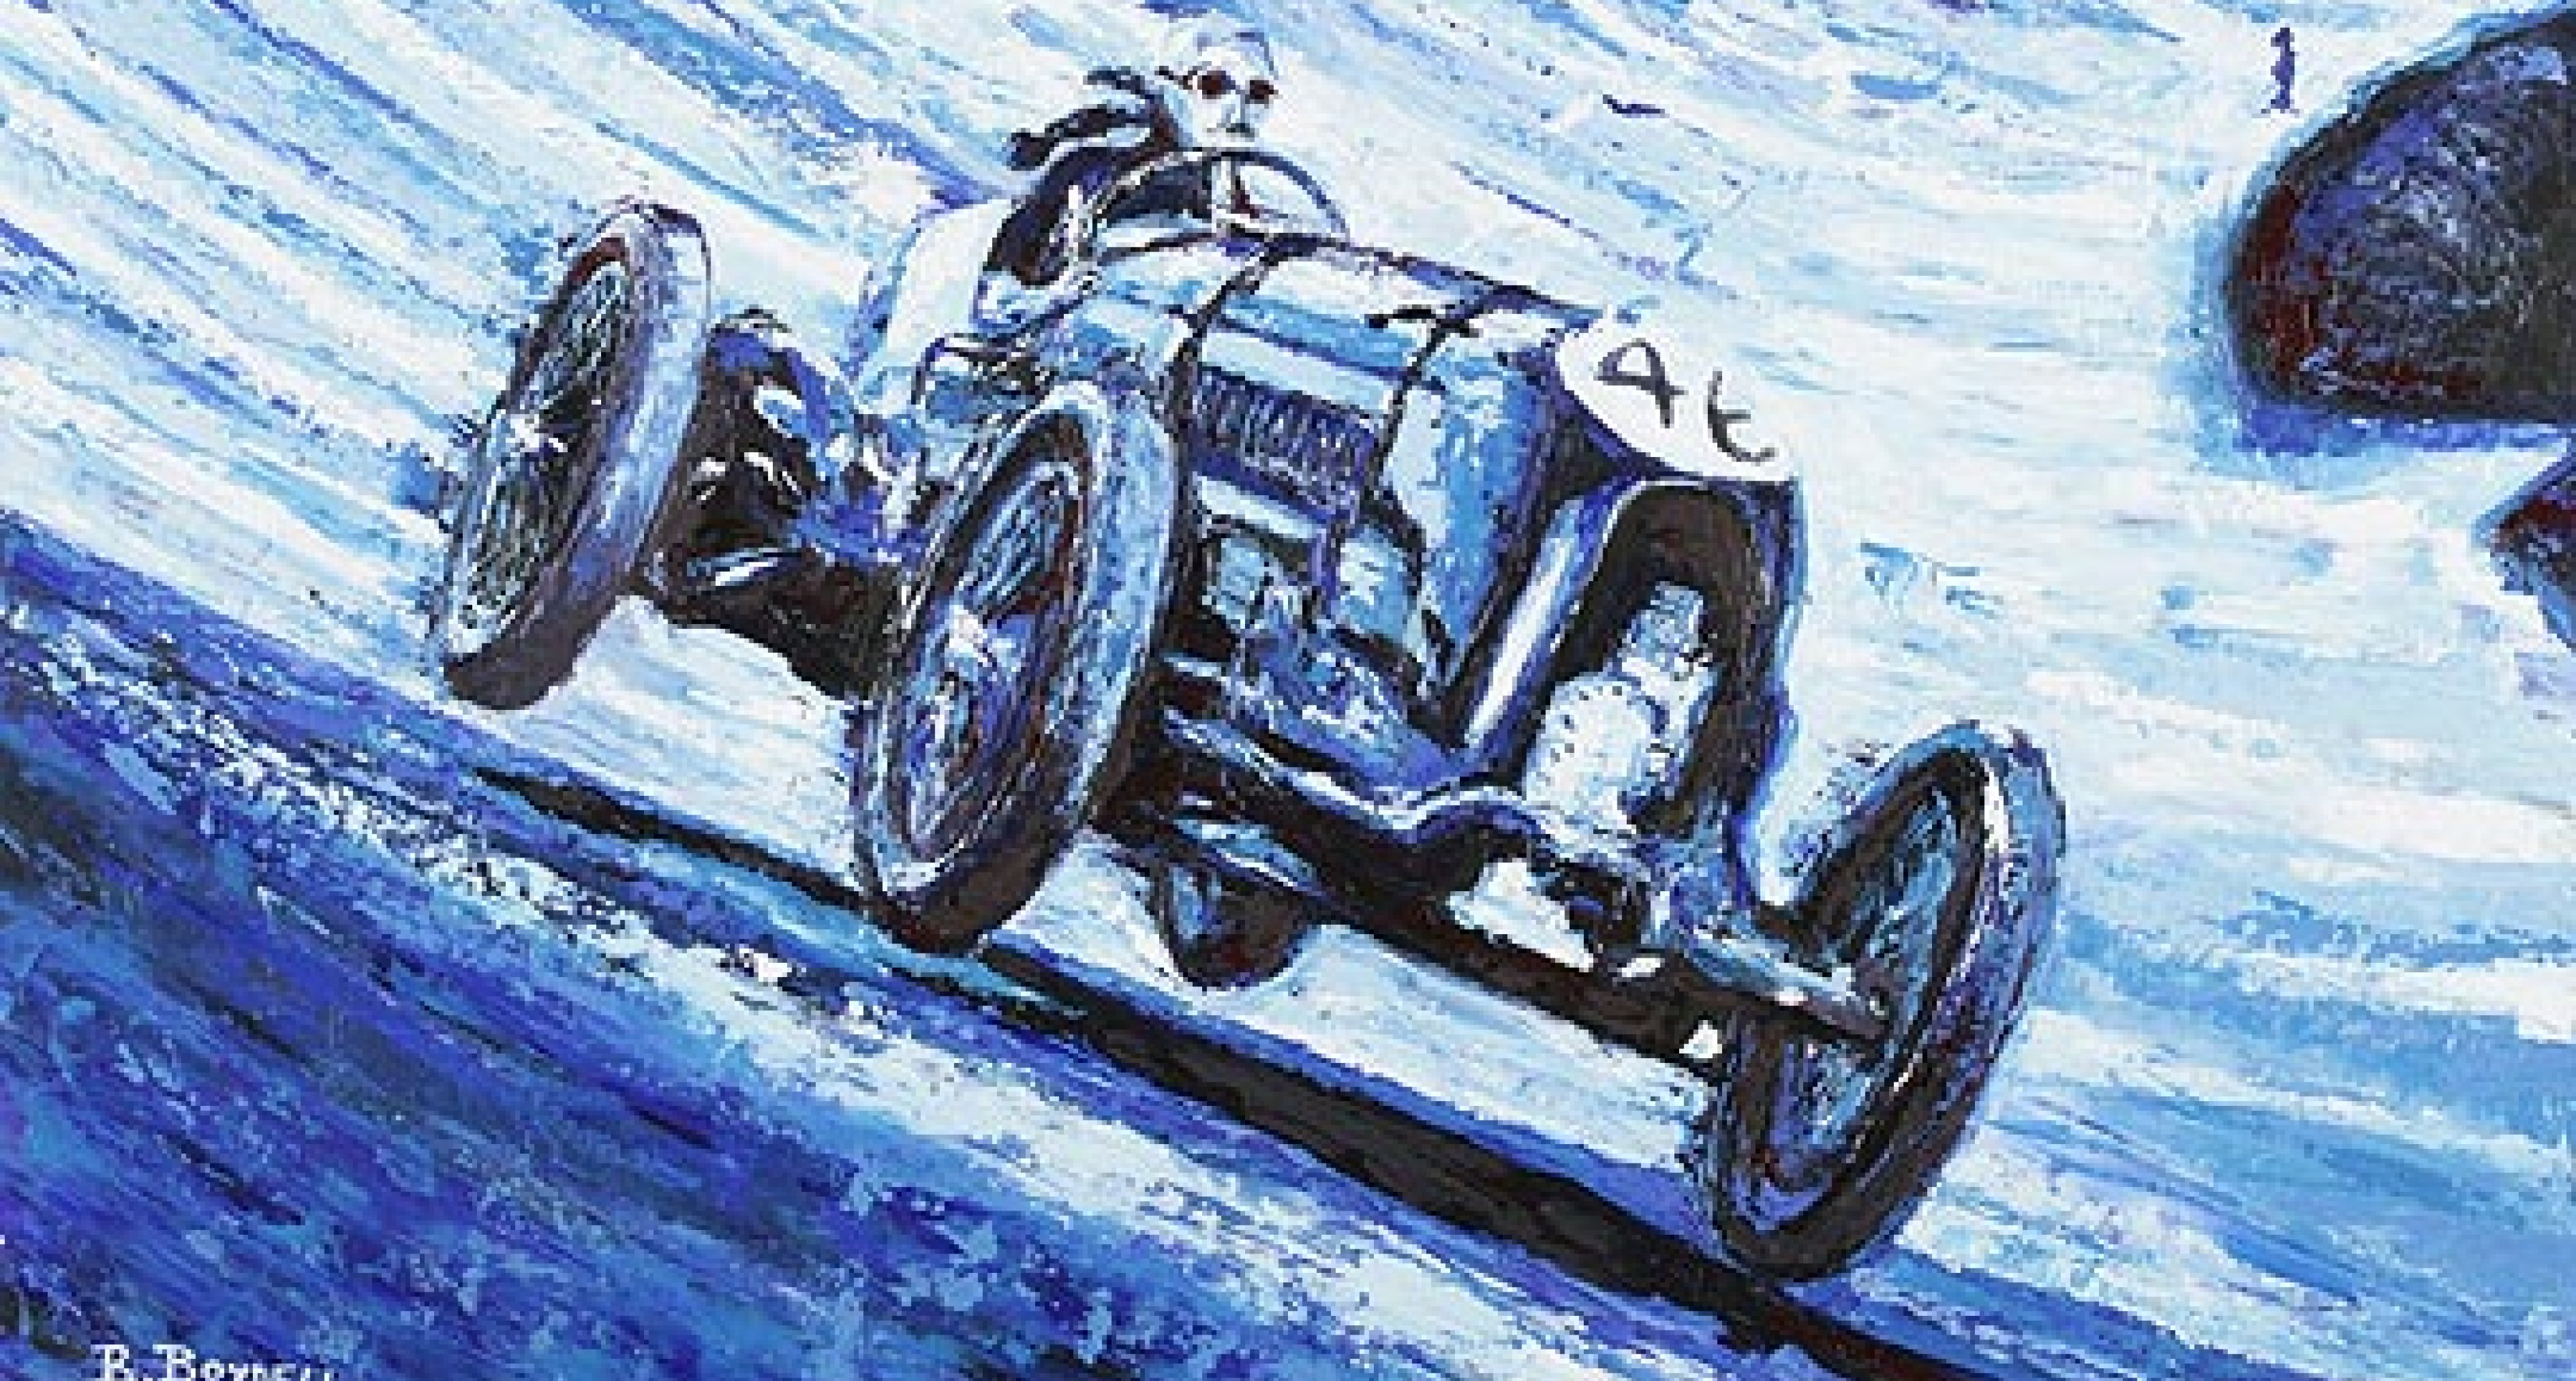 Bentley Sells Art to Help Cancer Centre